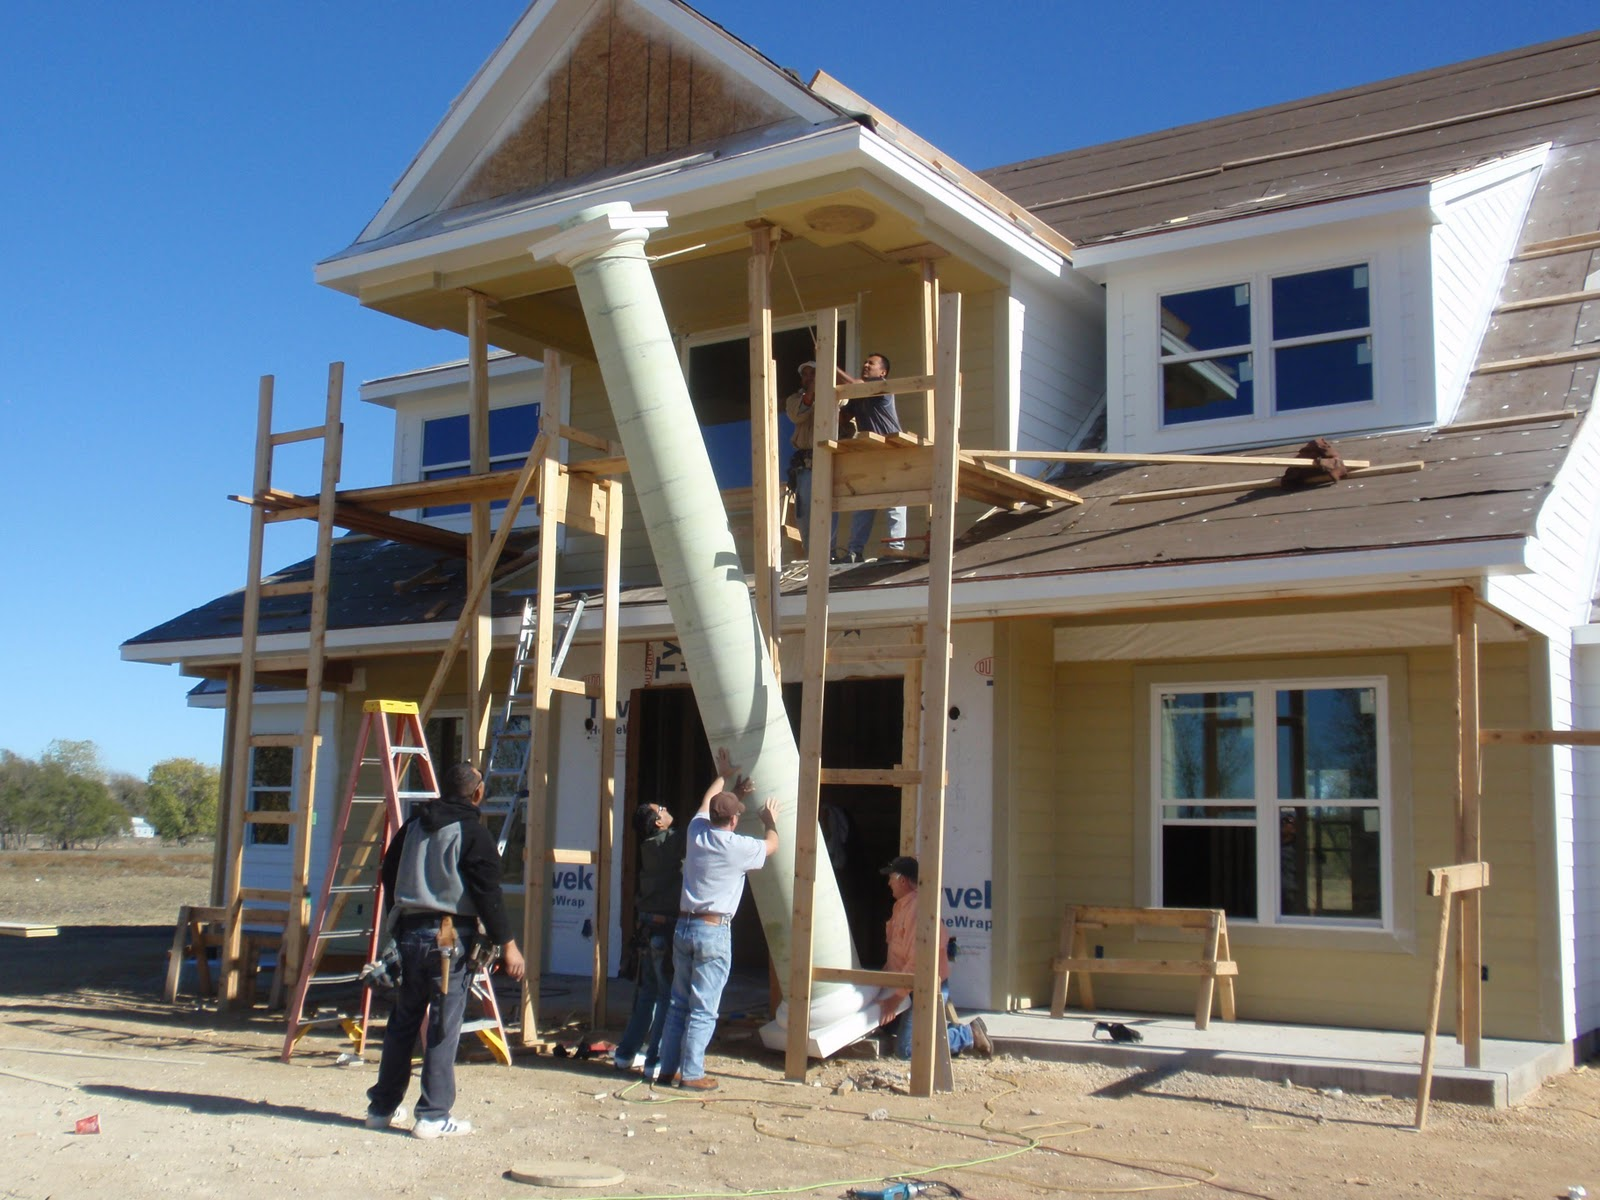 Macey House Project 2011-12: Columns, Roof and Front Entrance